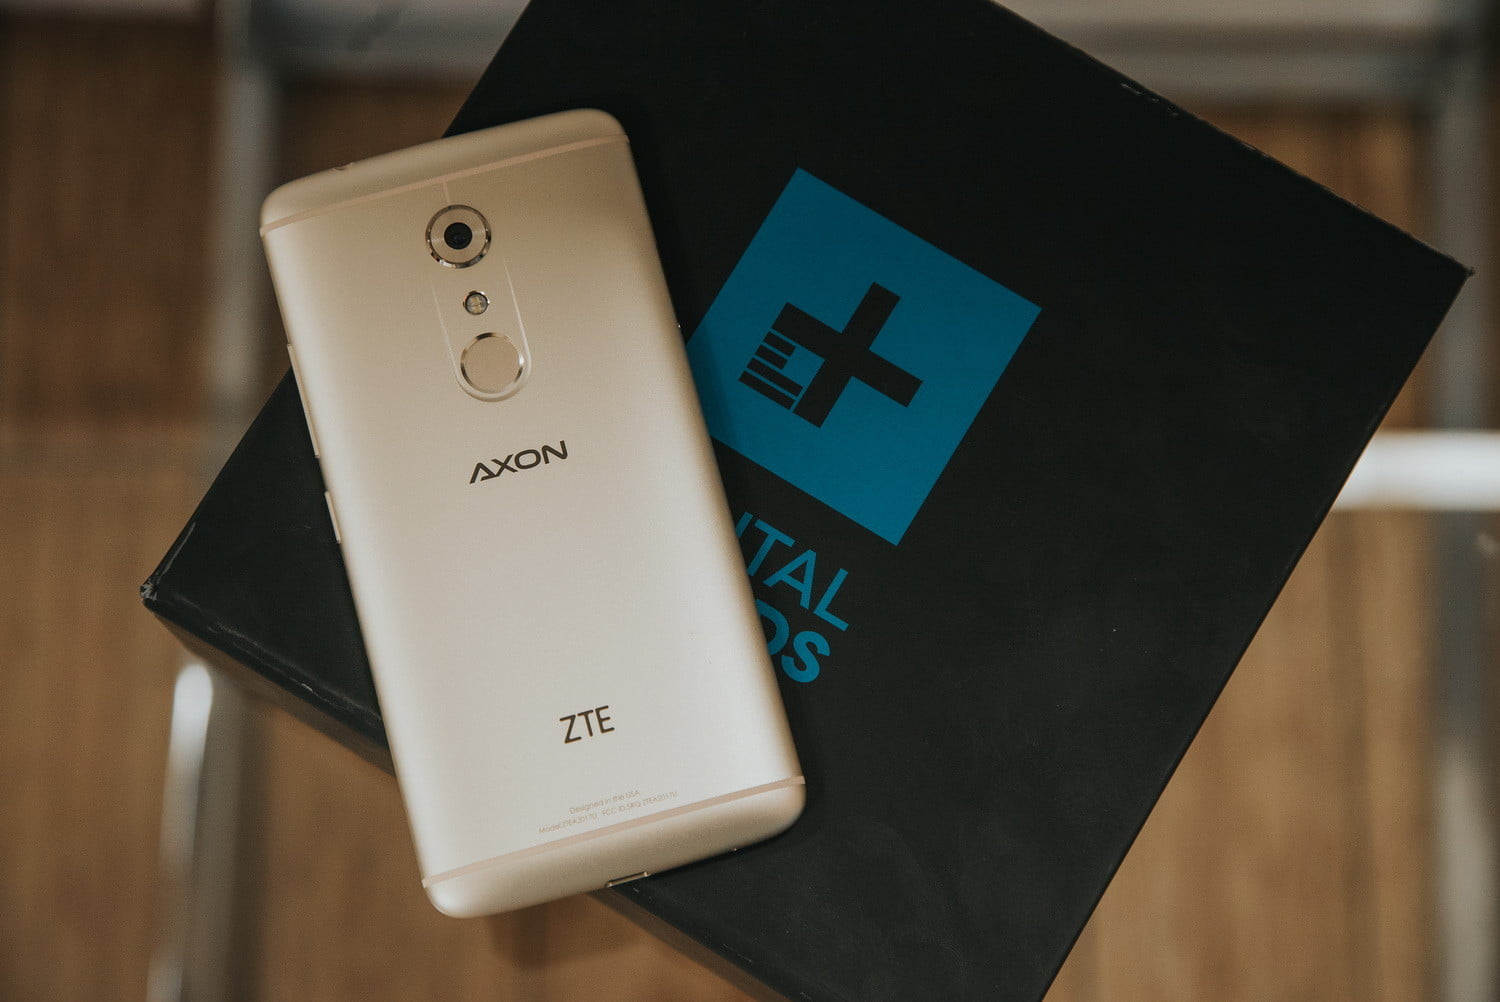 zte axon 7 review romana made several nice